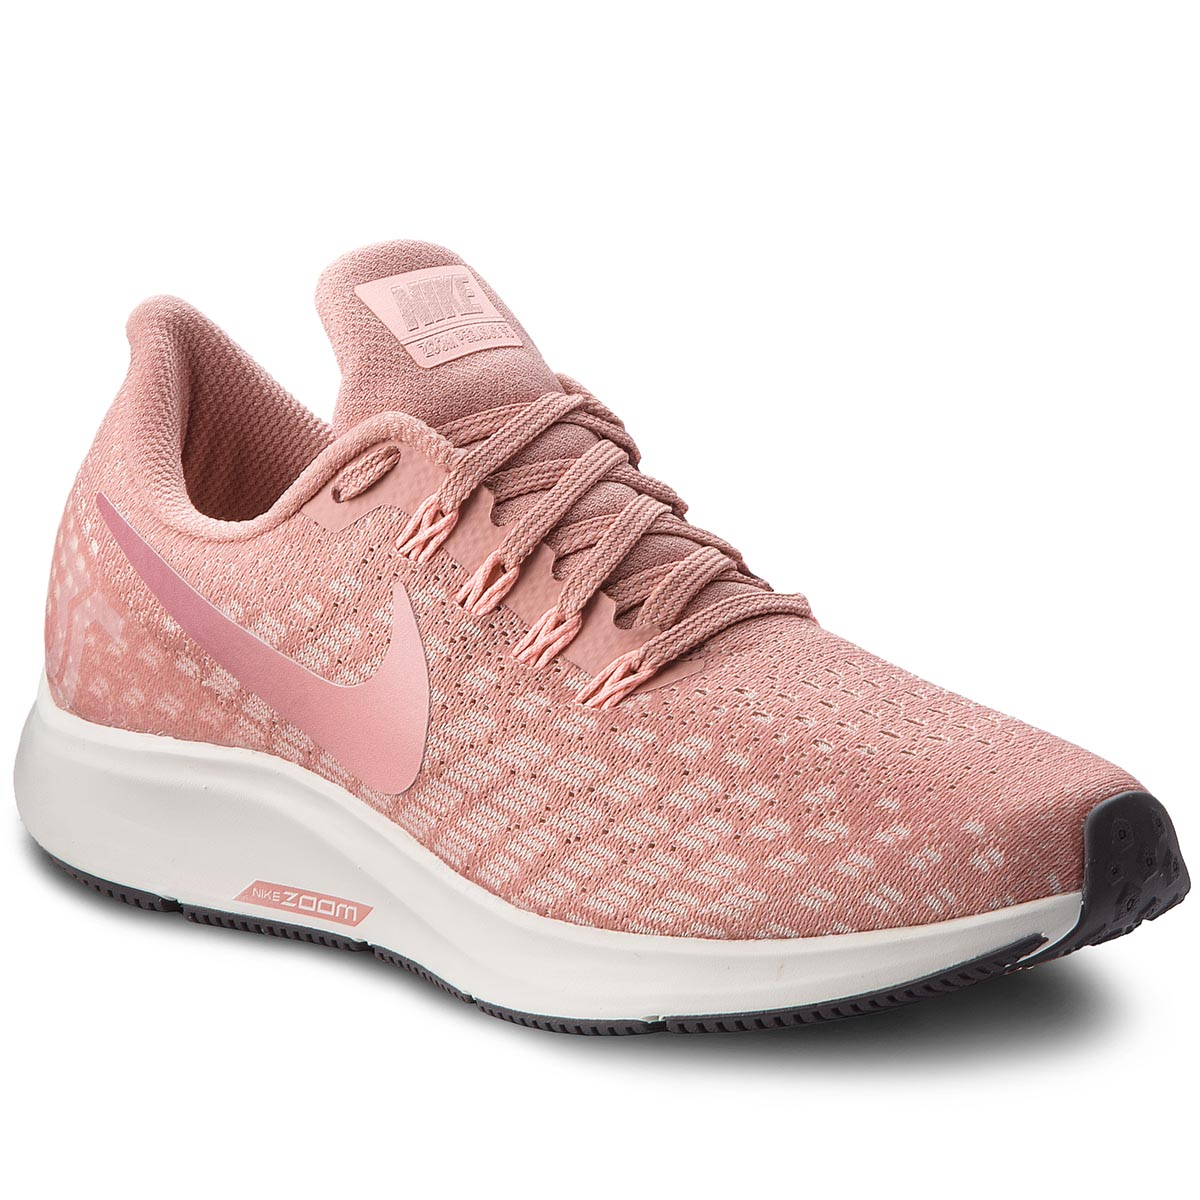 Pantofi NIKE - Air Zoom Pegasus 35 942855 603 Rust Pink/Tropical Pink